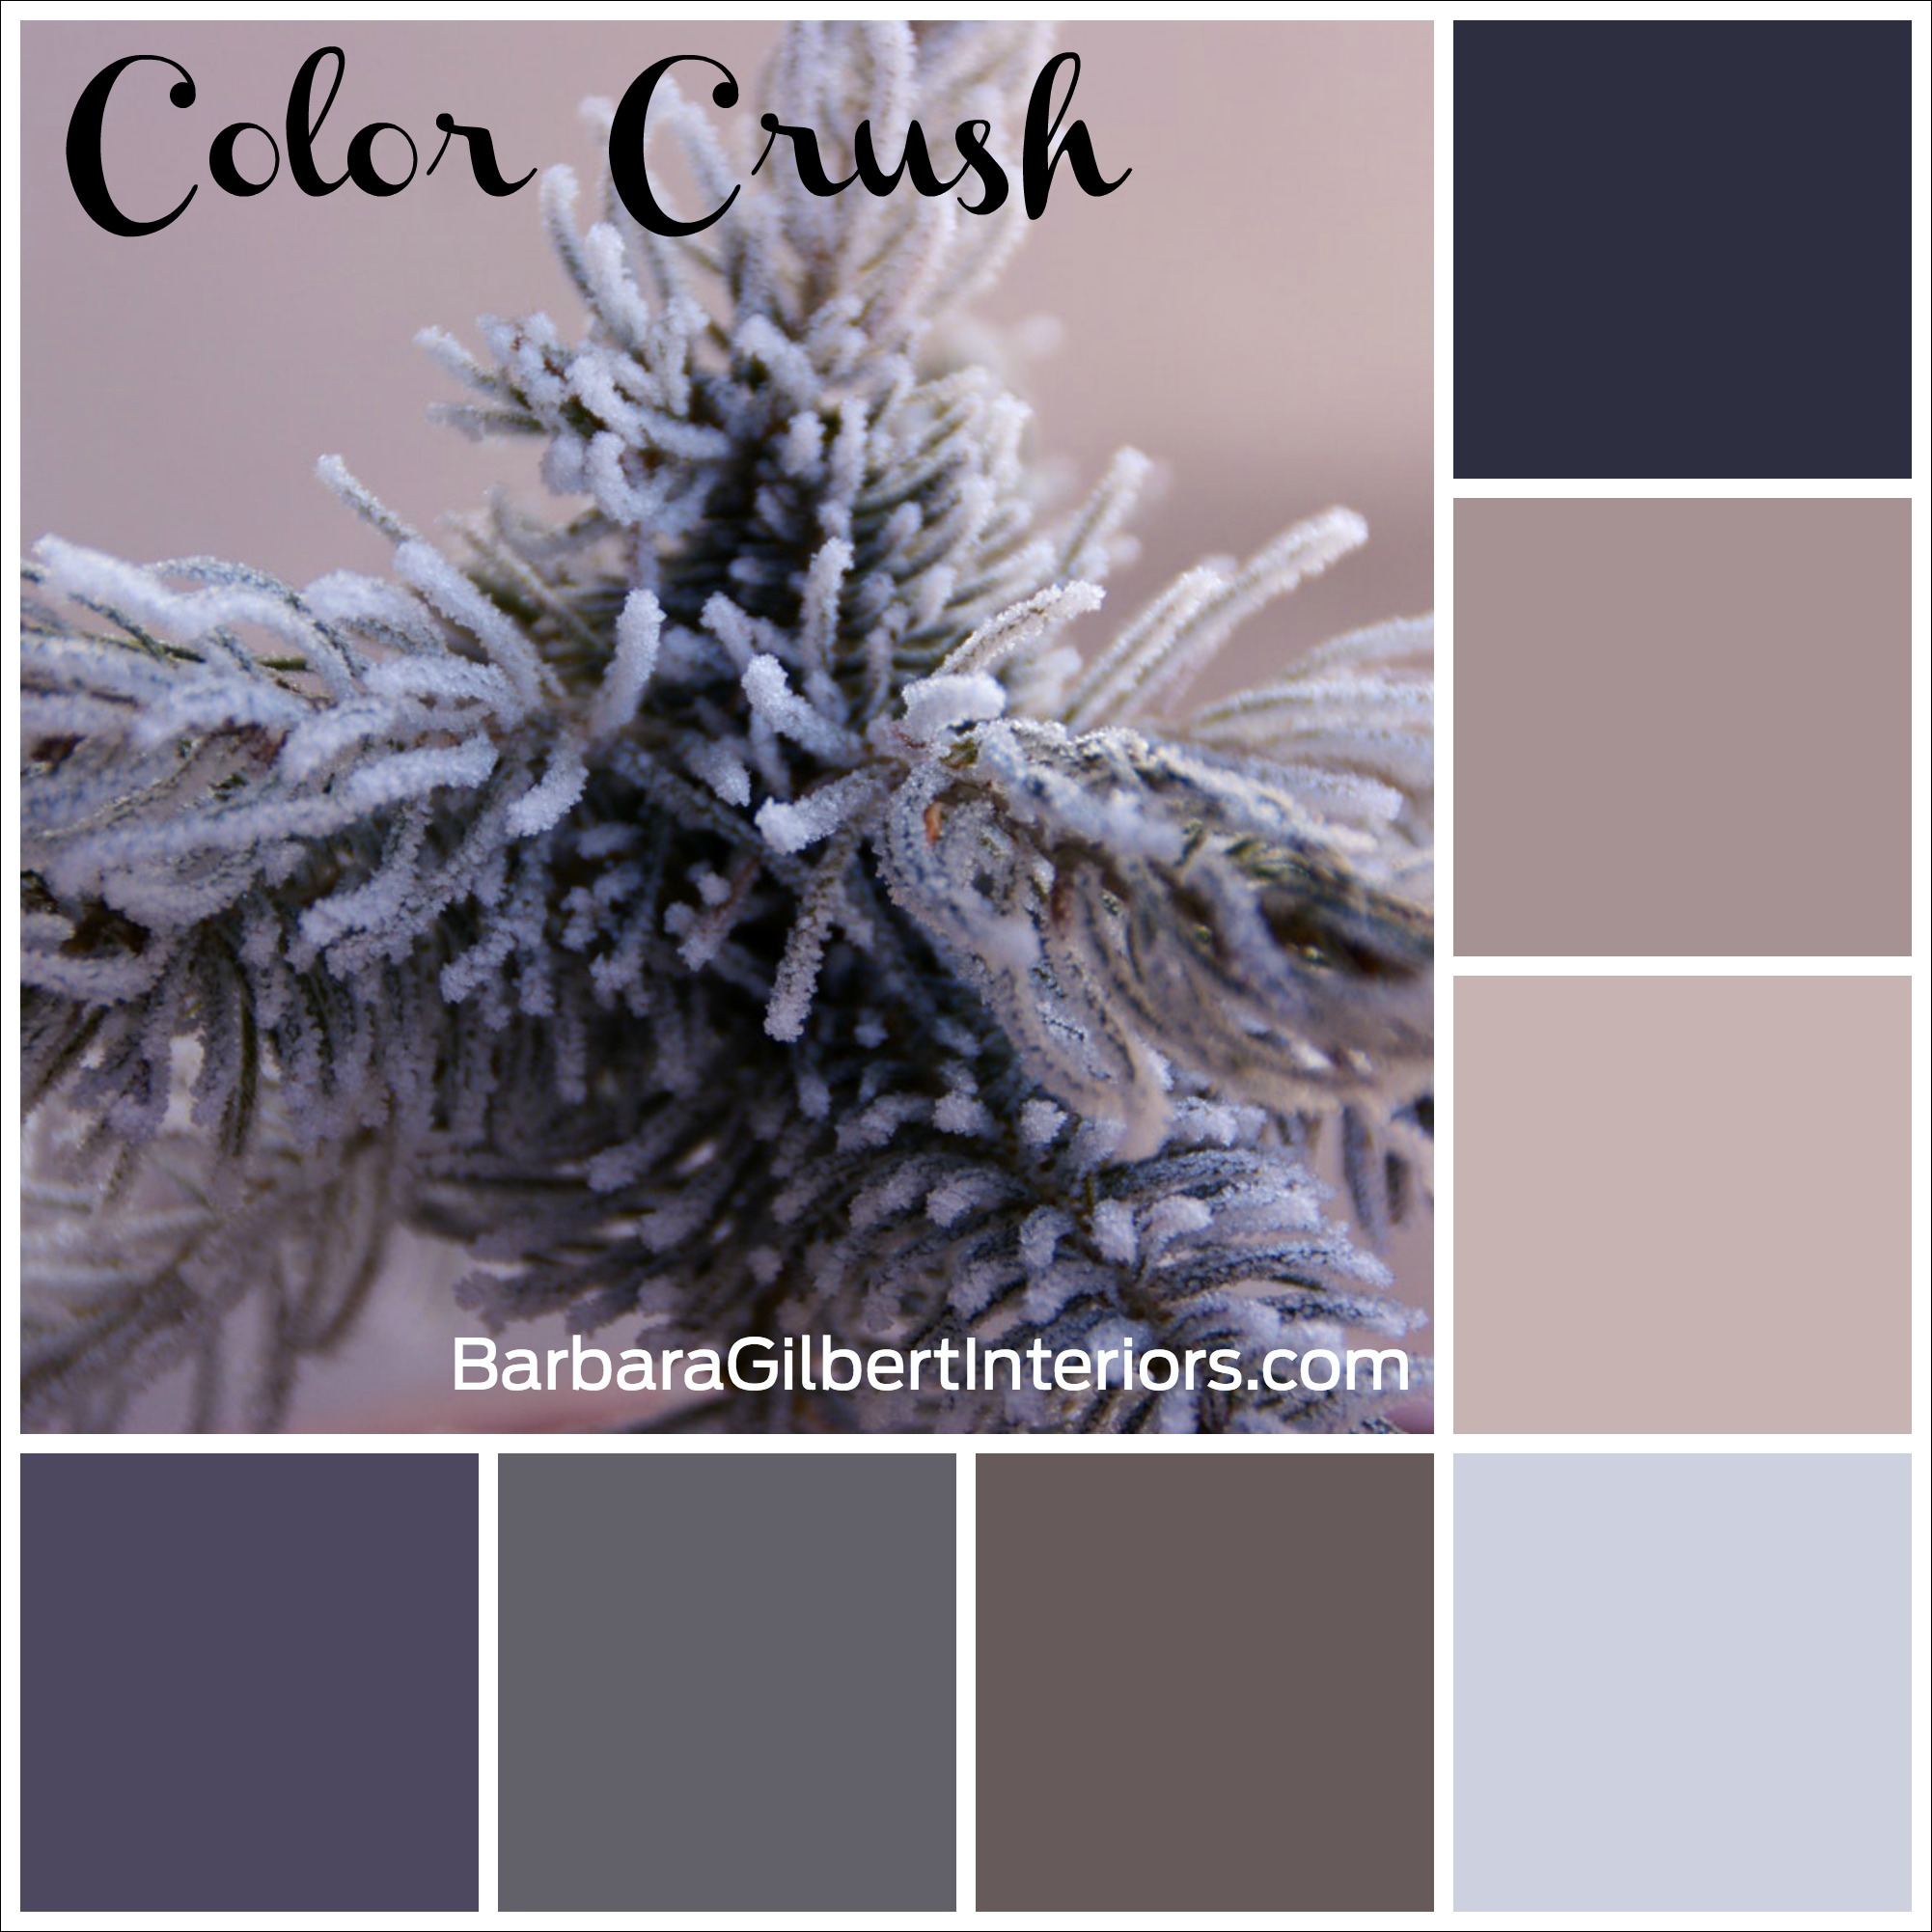 Color Crush: Frosty Winter Tree | Interior Design Dallas | Barbara Gilbert Interiors